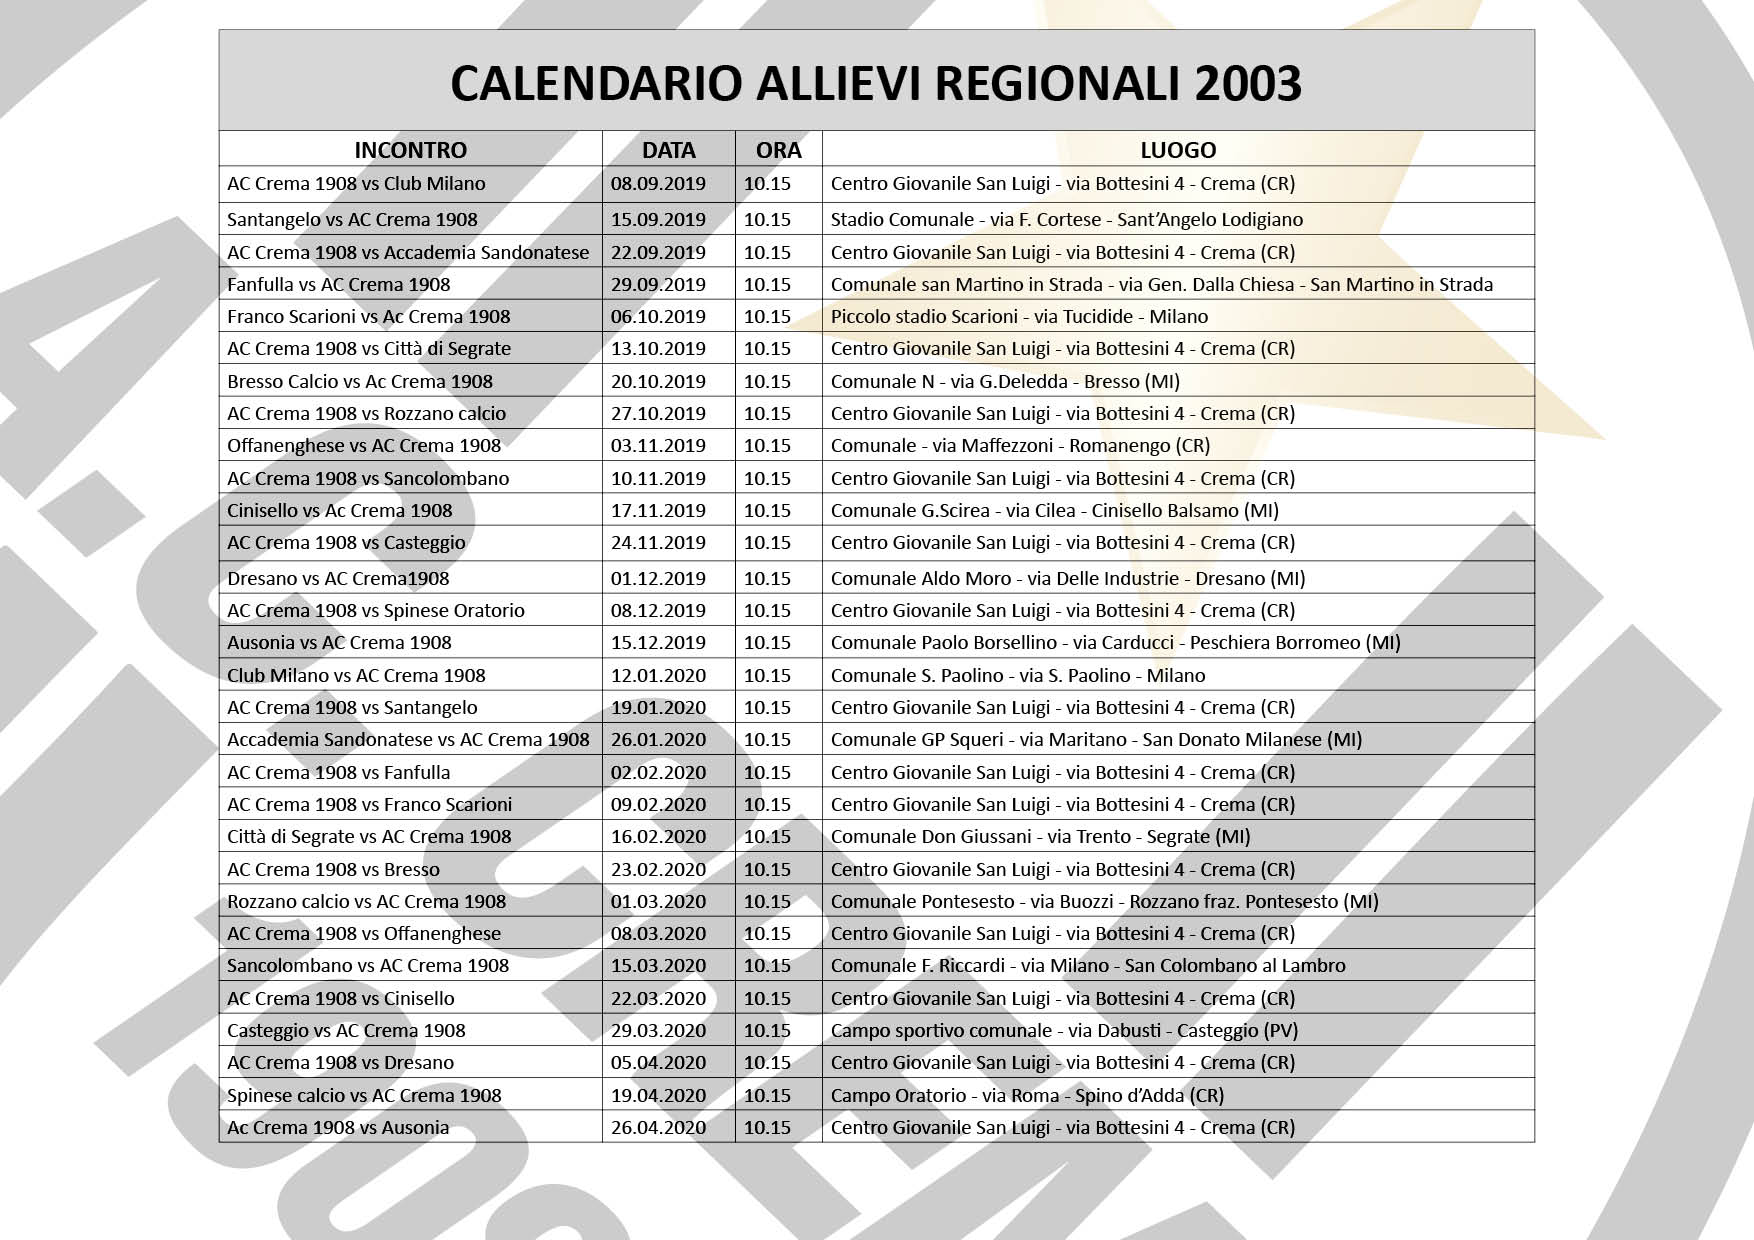 calendario allievi 2003